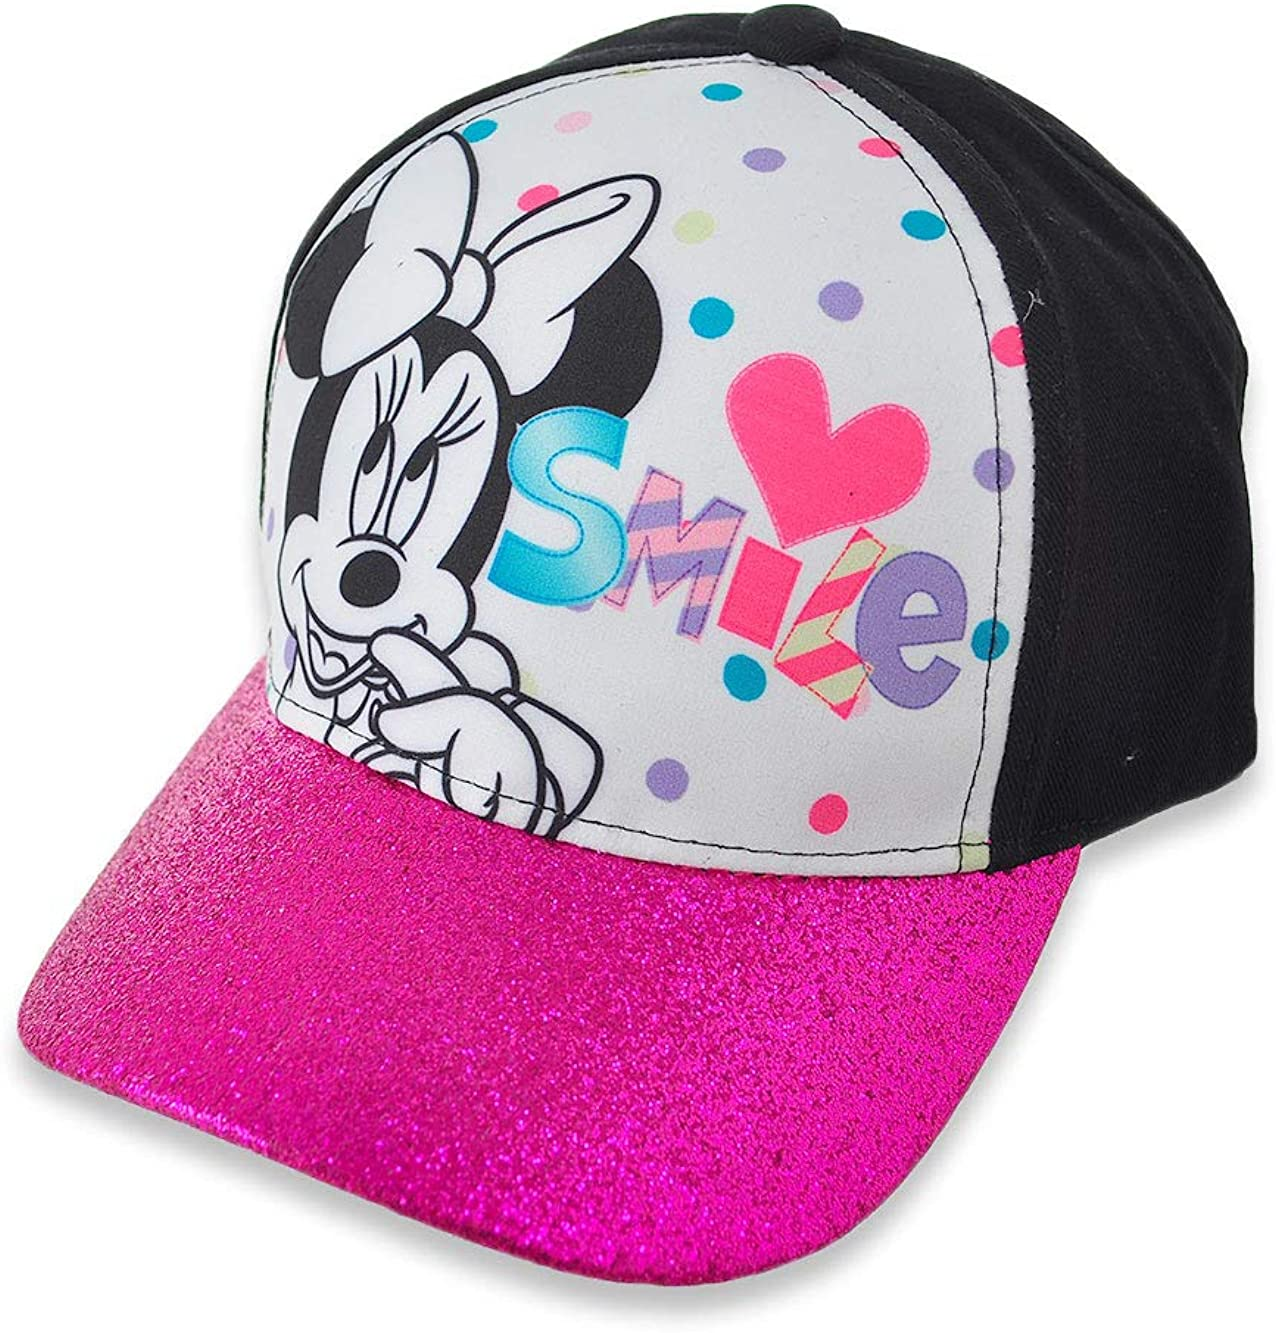 New Disney Minnie Mouse Cheap super special price Girls Hat Cap Purple Baseball Glitter At the price of surprise Sm